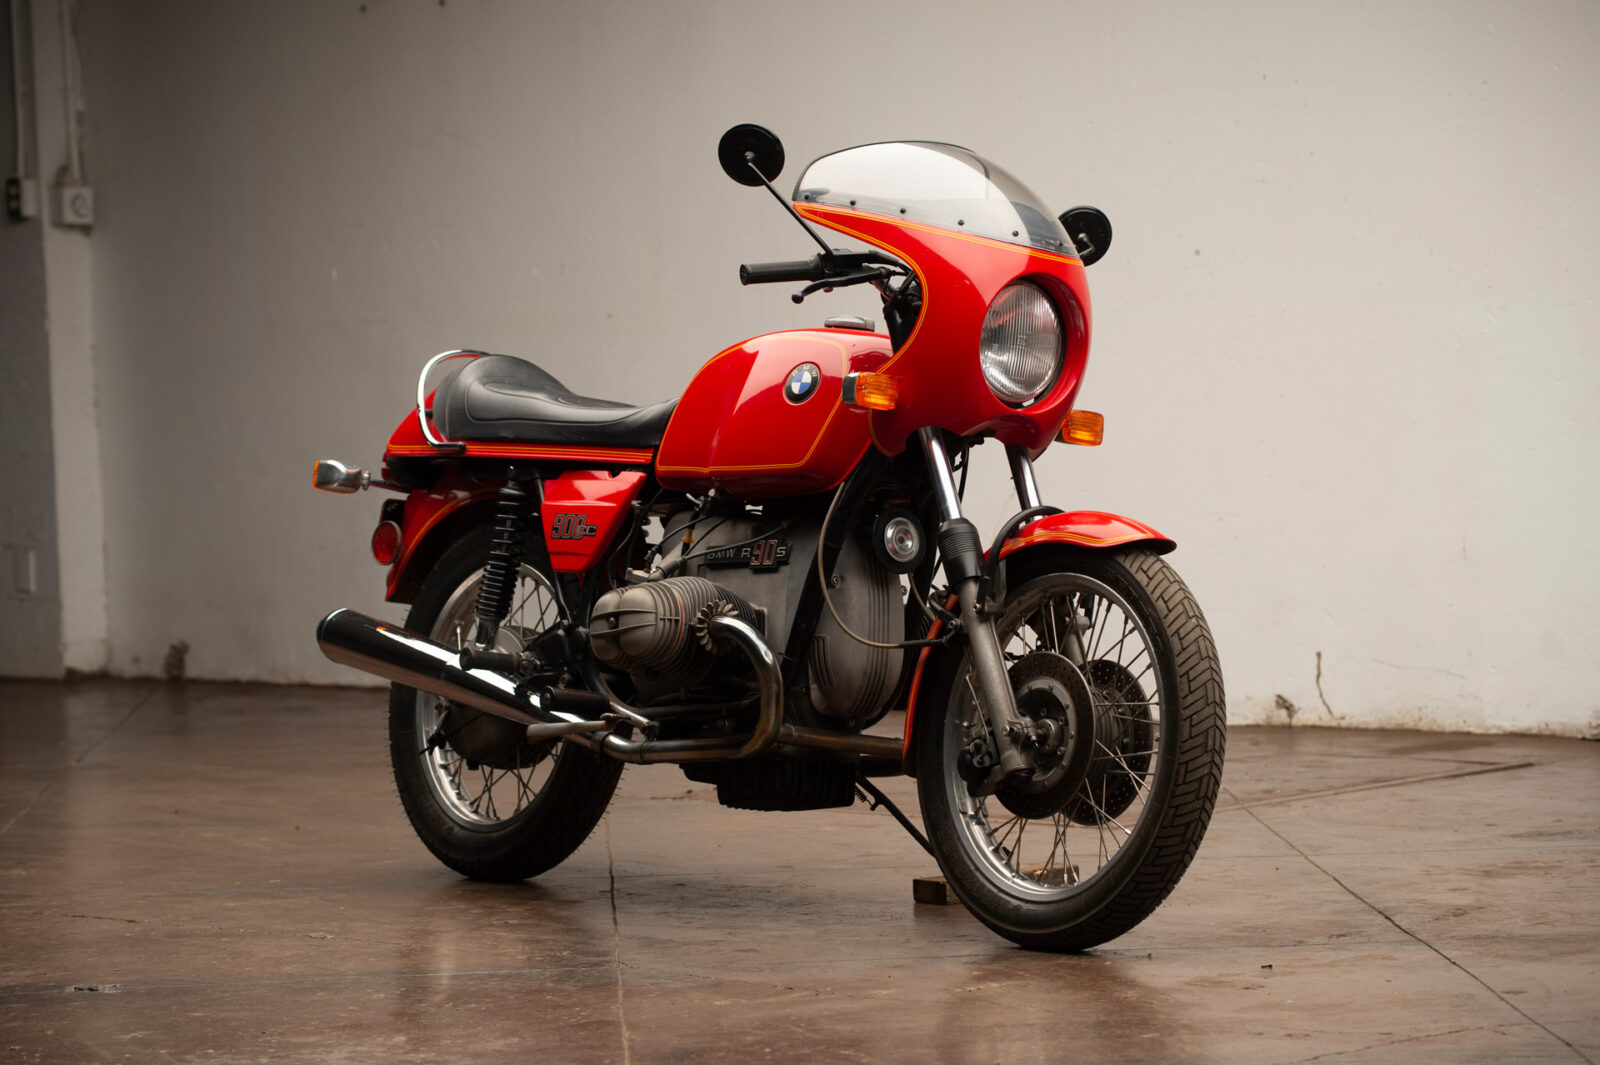 The BMW R90S - The Motorcycle That Launched BMW Into The Modern Age